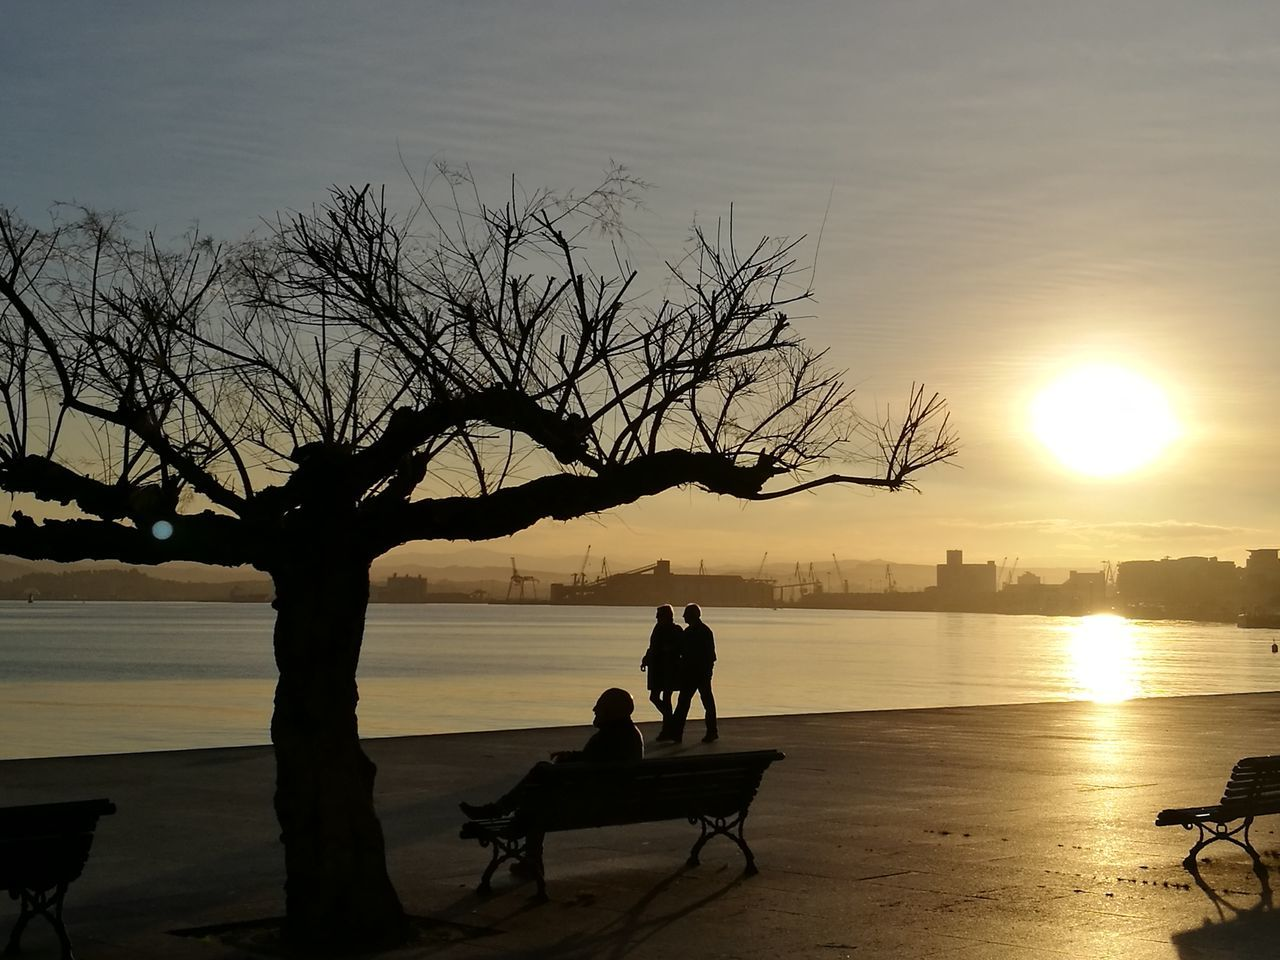 Sunset Water People Adult Tree Outdoors Sky HuaweiP9 EyeEm Vision Santander, Spain Eyemphotography Tree Sunny Day Colors Spain♥ Diciembre Mar Cantábrico Nofilter Finding New Frontiers